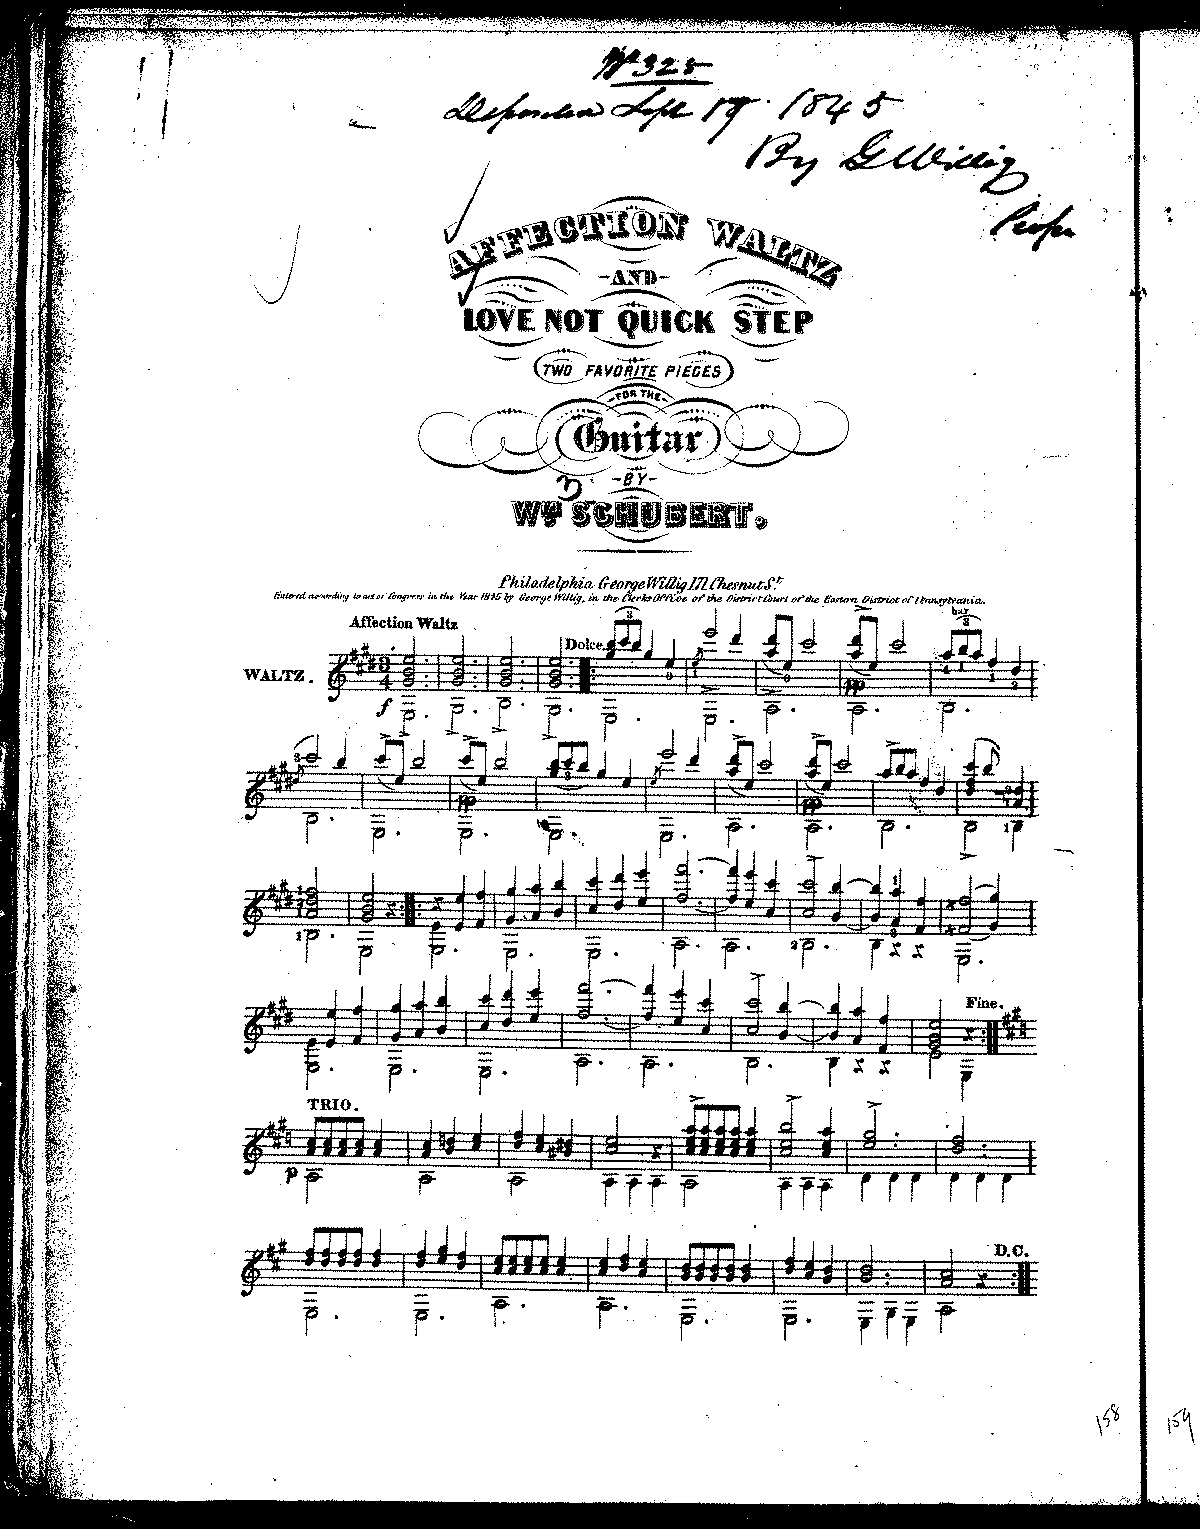 PMLP669985-Schubert W-Affection Waltz and Love Not Quick Step-orig.pdf